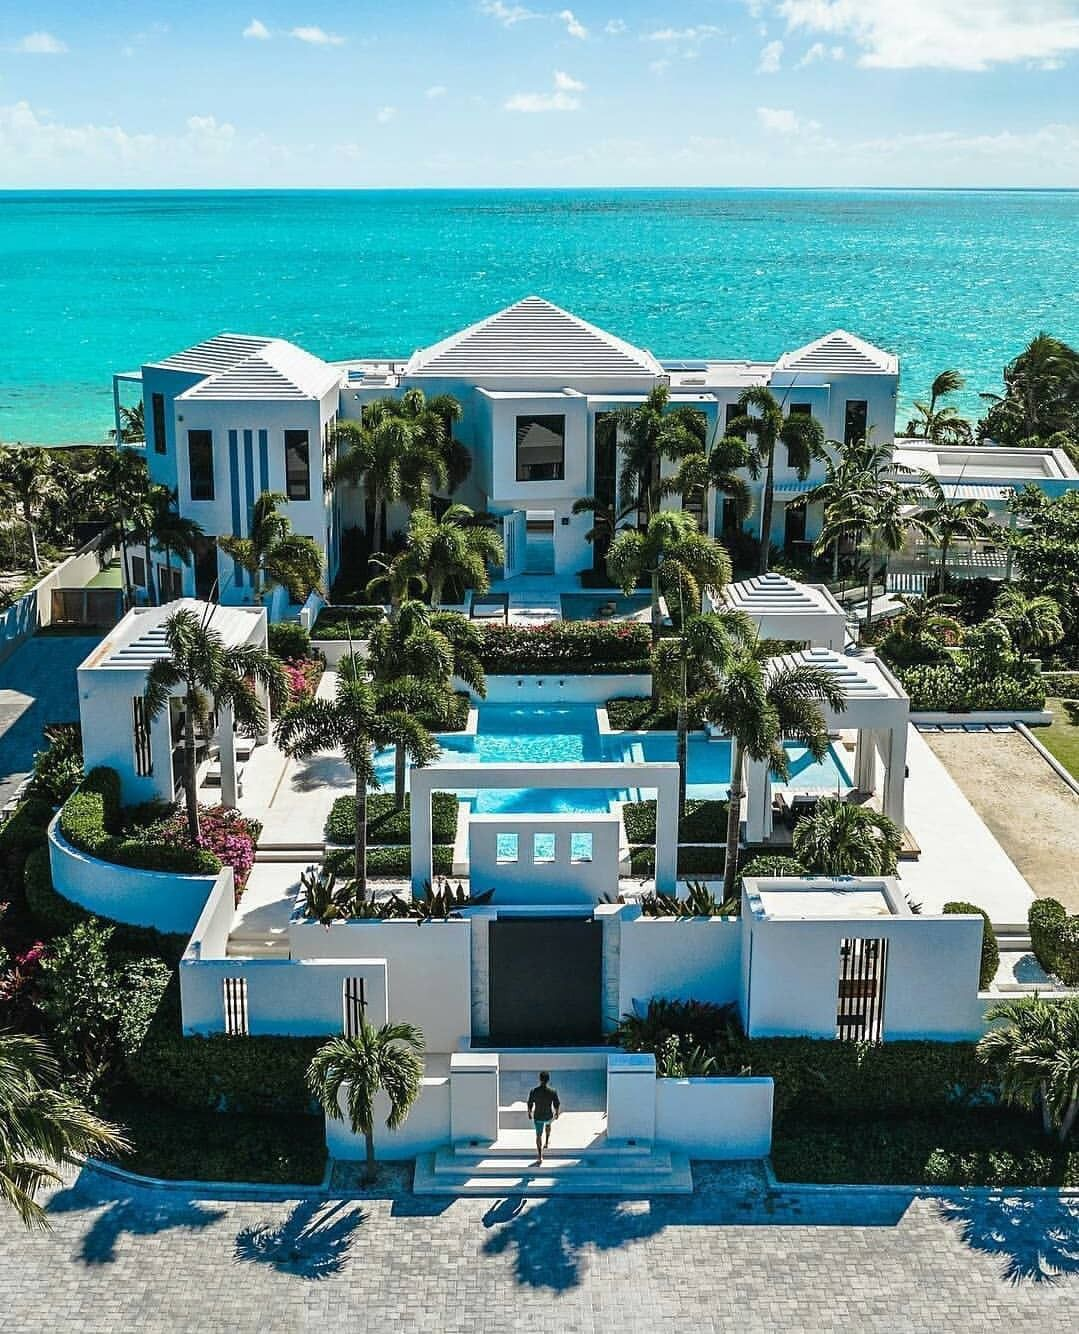 Pin By Lay Lay On Mansoes Dream House Exterior Luxury Homes Dream Houses Mansions Luxury